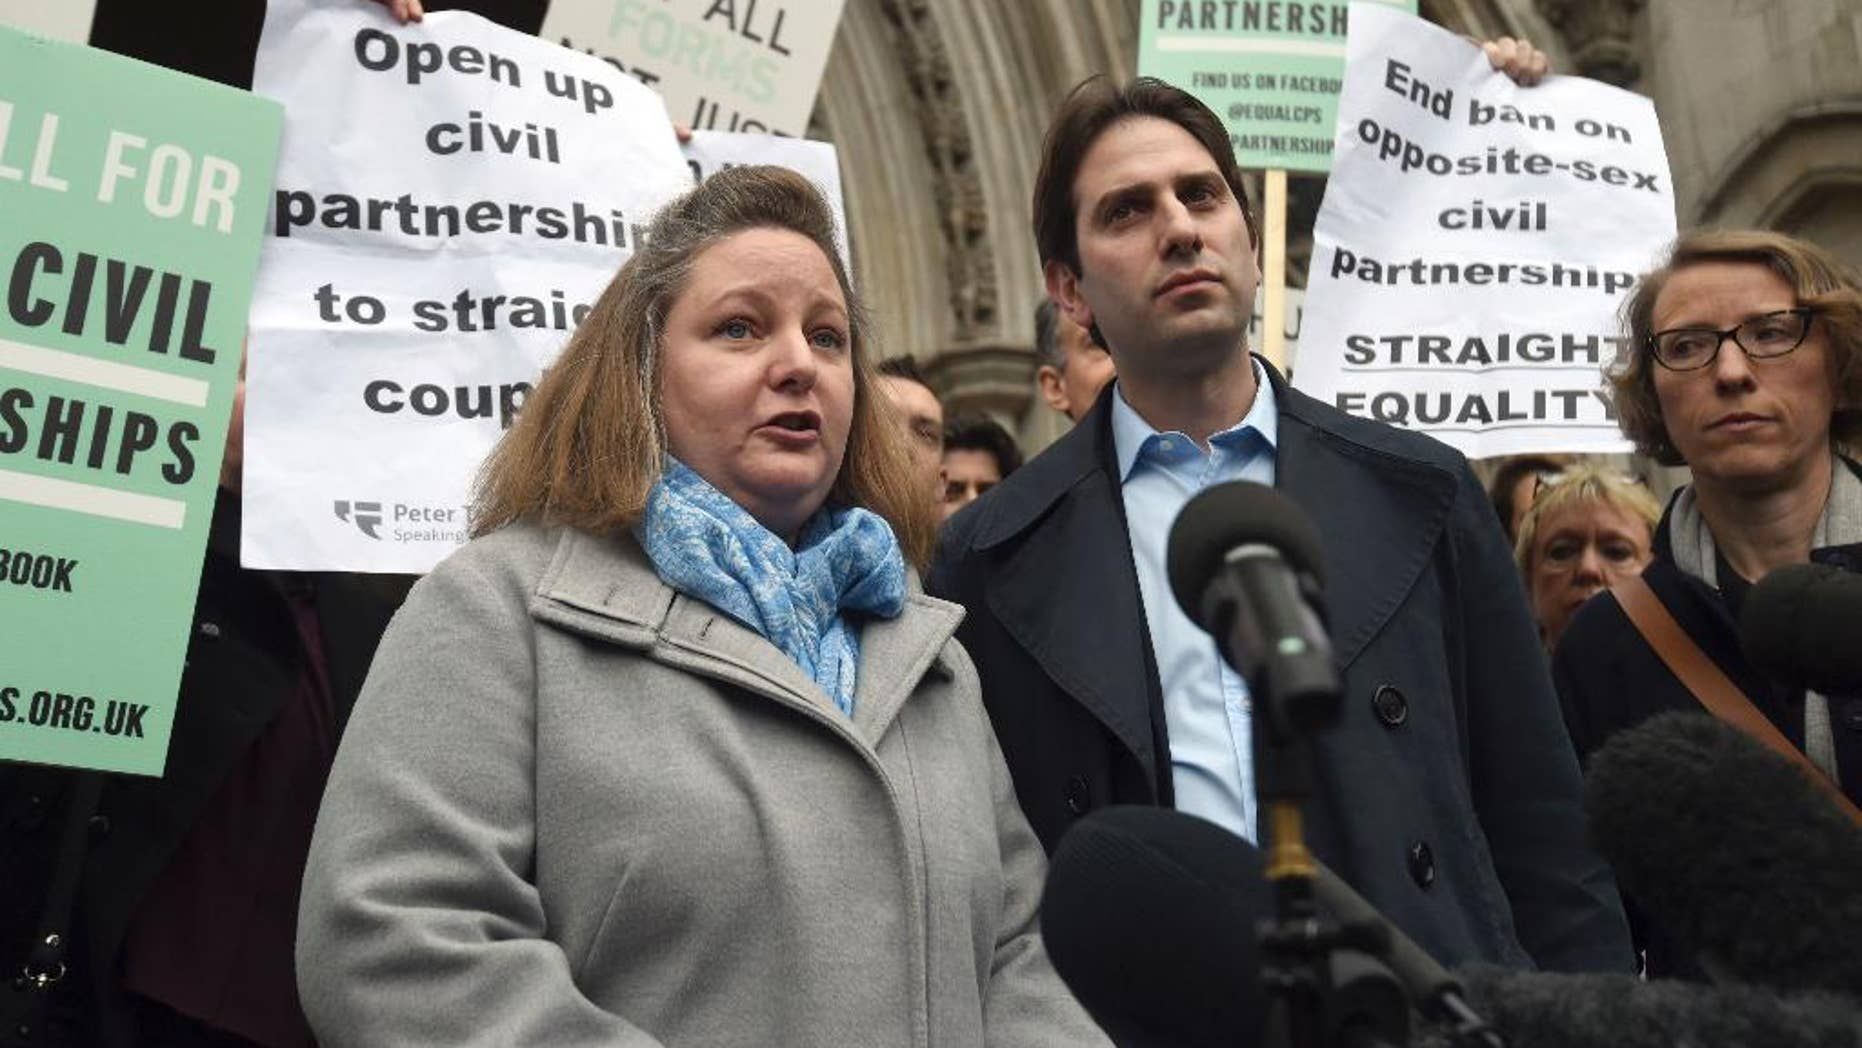 "Rebecca Steinfeld, left, and Charles Keidan speak to the media outside the Royal Courts of Justice in London, Tuesday, Feb. 21, 2017. A British couple who want their relationship recognized in law without the ""patriarchal baggage"" of marriage have lost a bid to be allowed a civil partnership. Rebecca Steinfeld and Charles Keidan say they face discrimination because only same-sex couples are eligible for civil partnerships. The High Court ruled against them last year, and on Tuesday the Court of Appeal upheld the ruling by a 2-1 margin. (Charlotte Ball/PA via AP)"